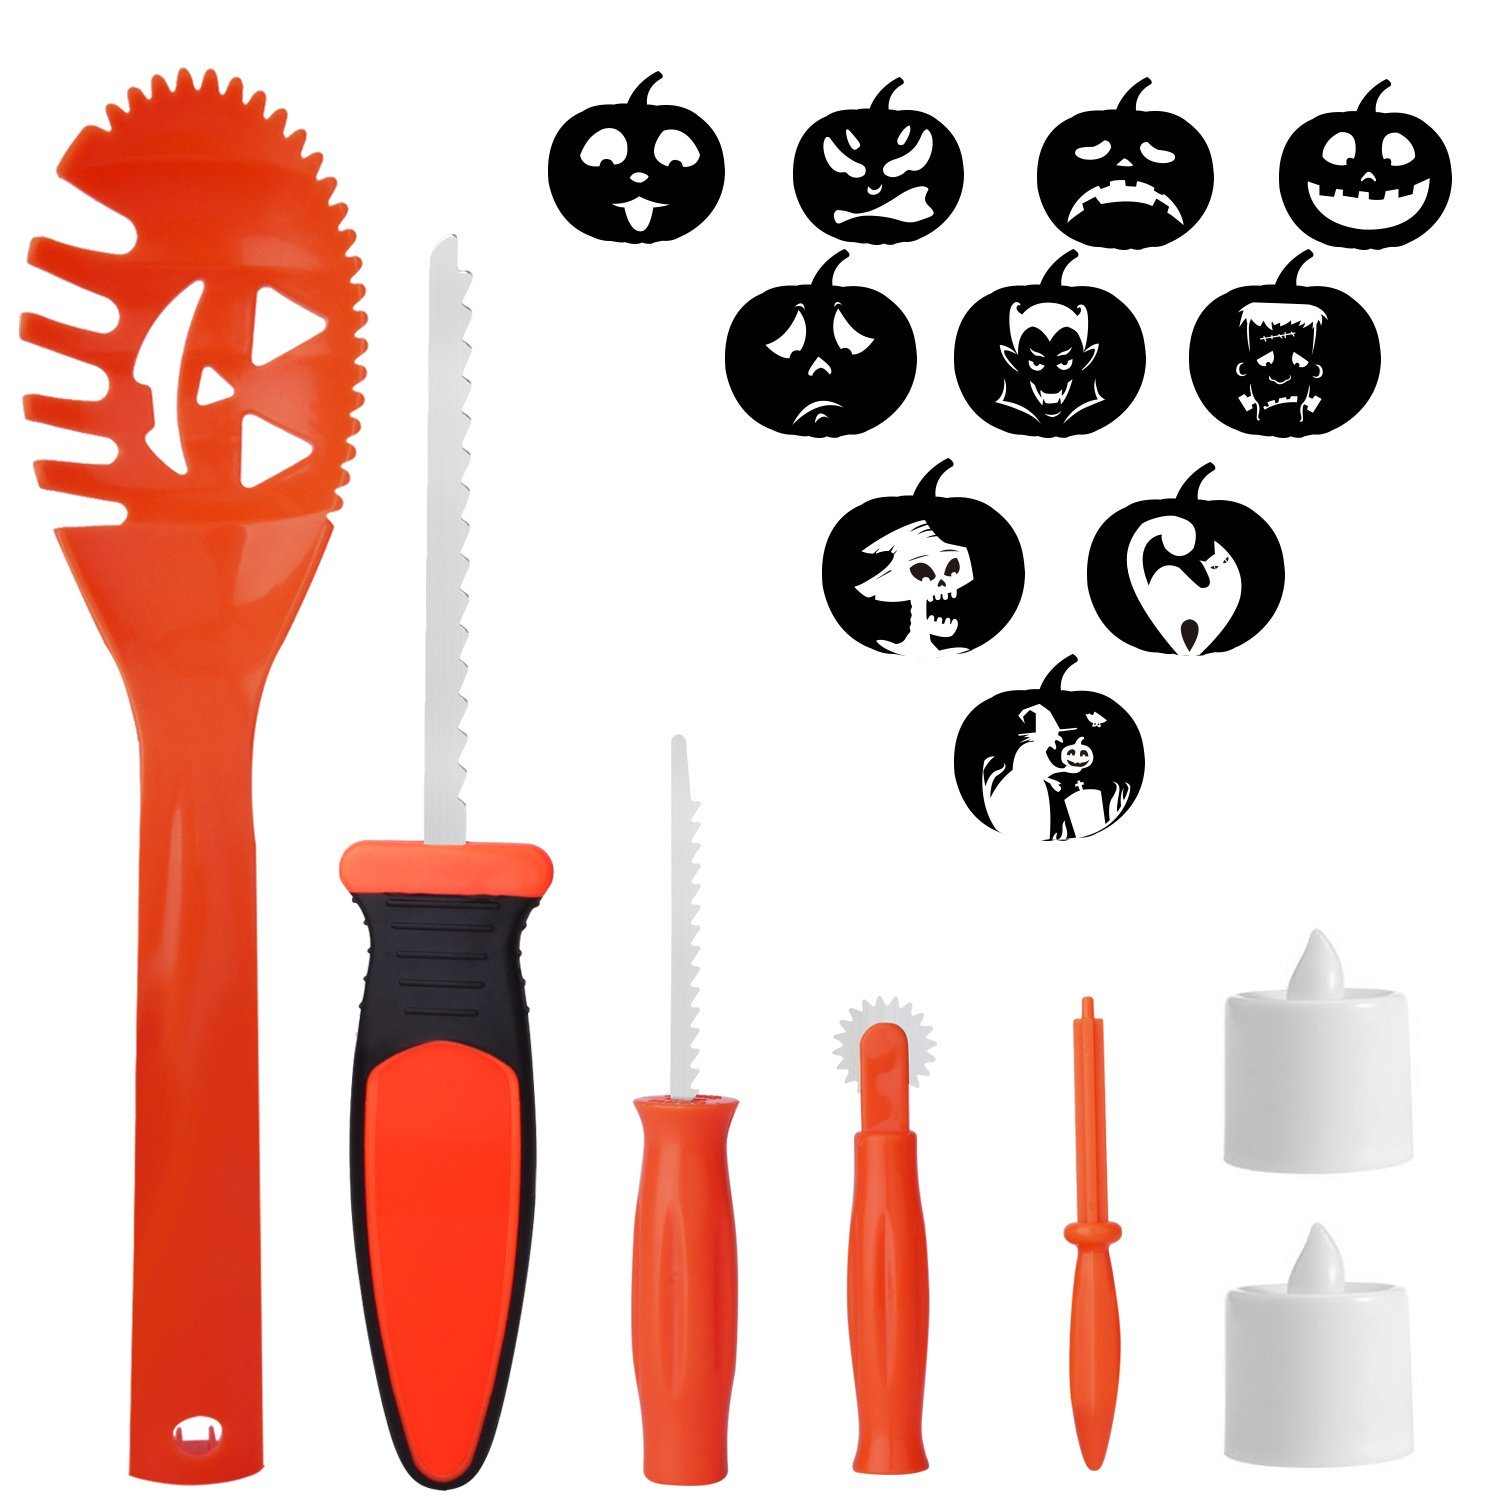 Pumpkin Carving Kit for Kids 5 Easy Halloween Pumpkin Carving Tools Set 2 LED Candles & 10 Carving Templates